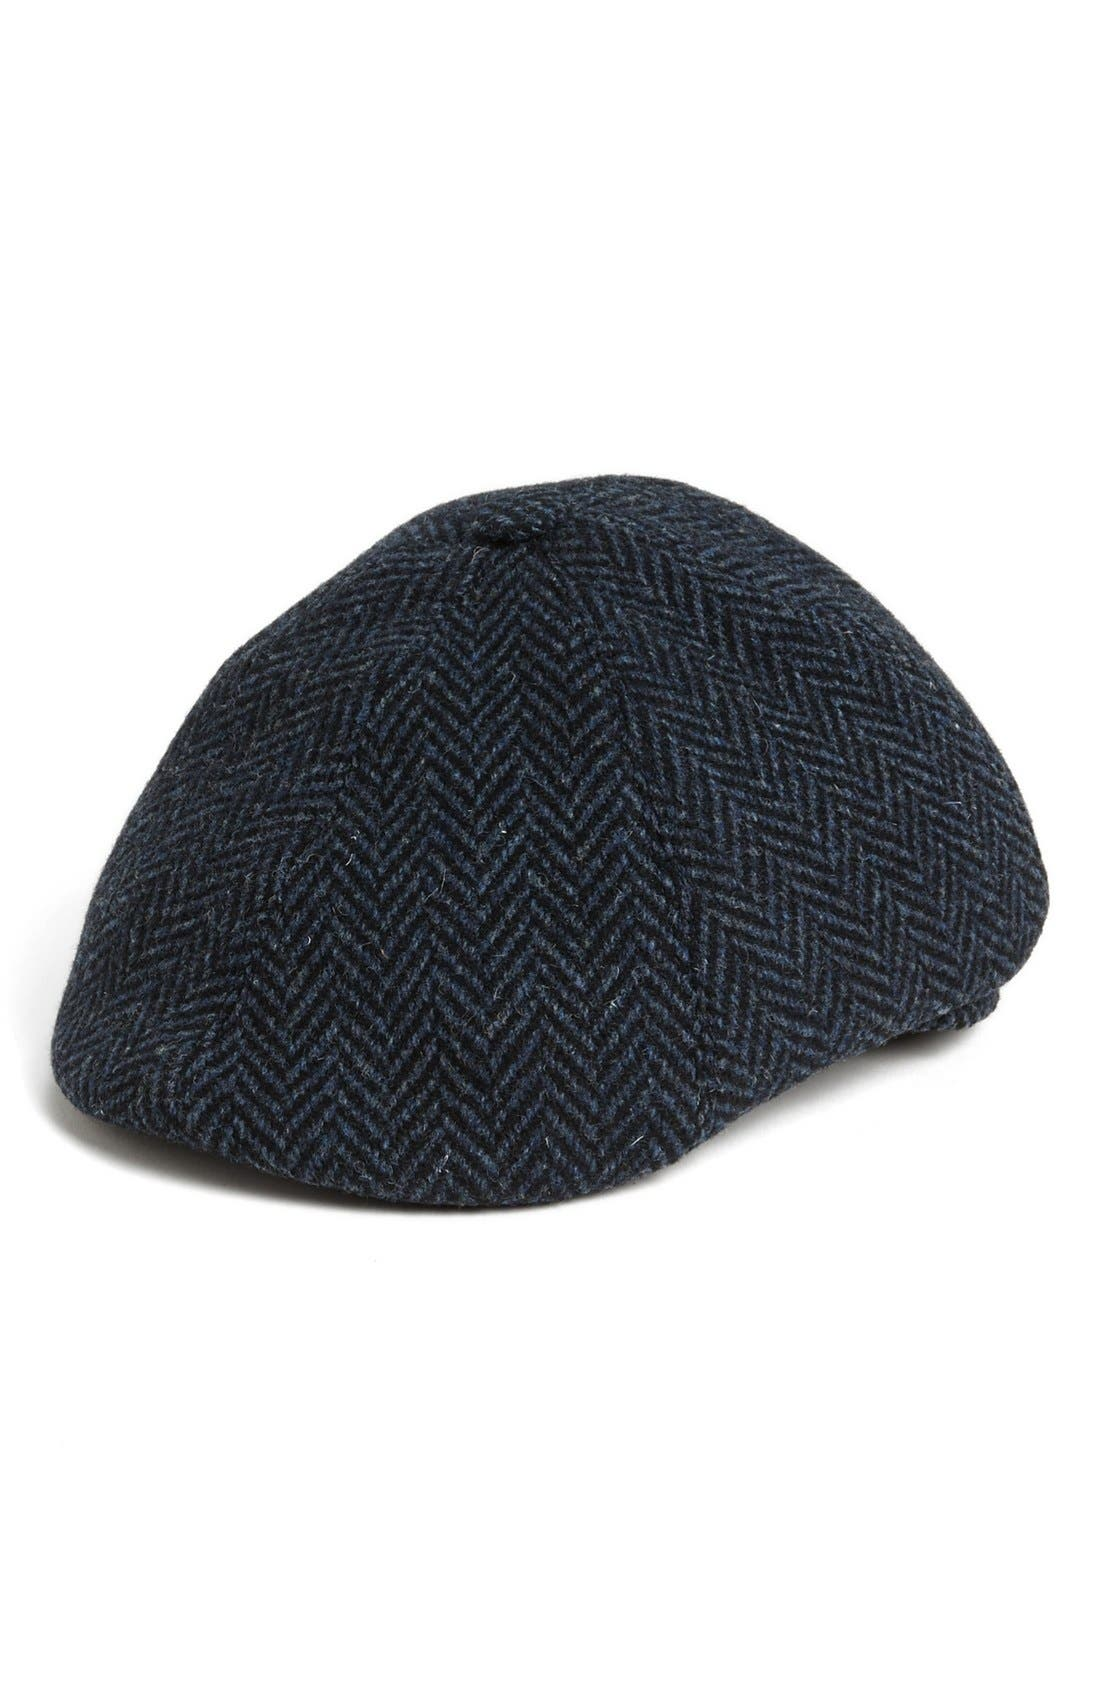 Alternate Image 1 Selected - Wigens Herringbone Driving Cap